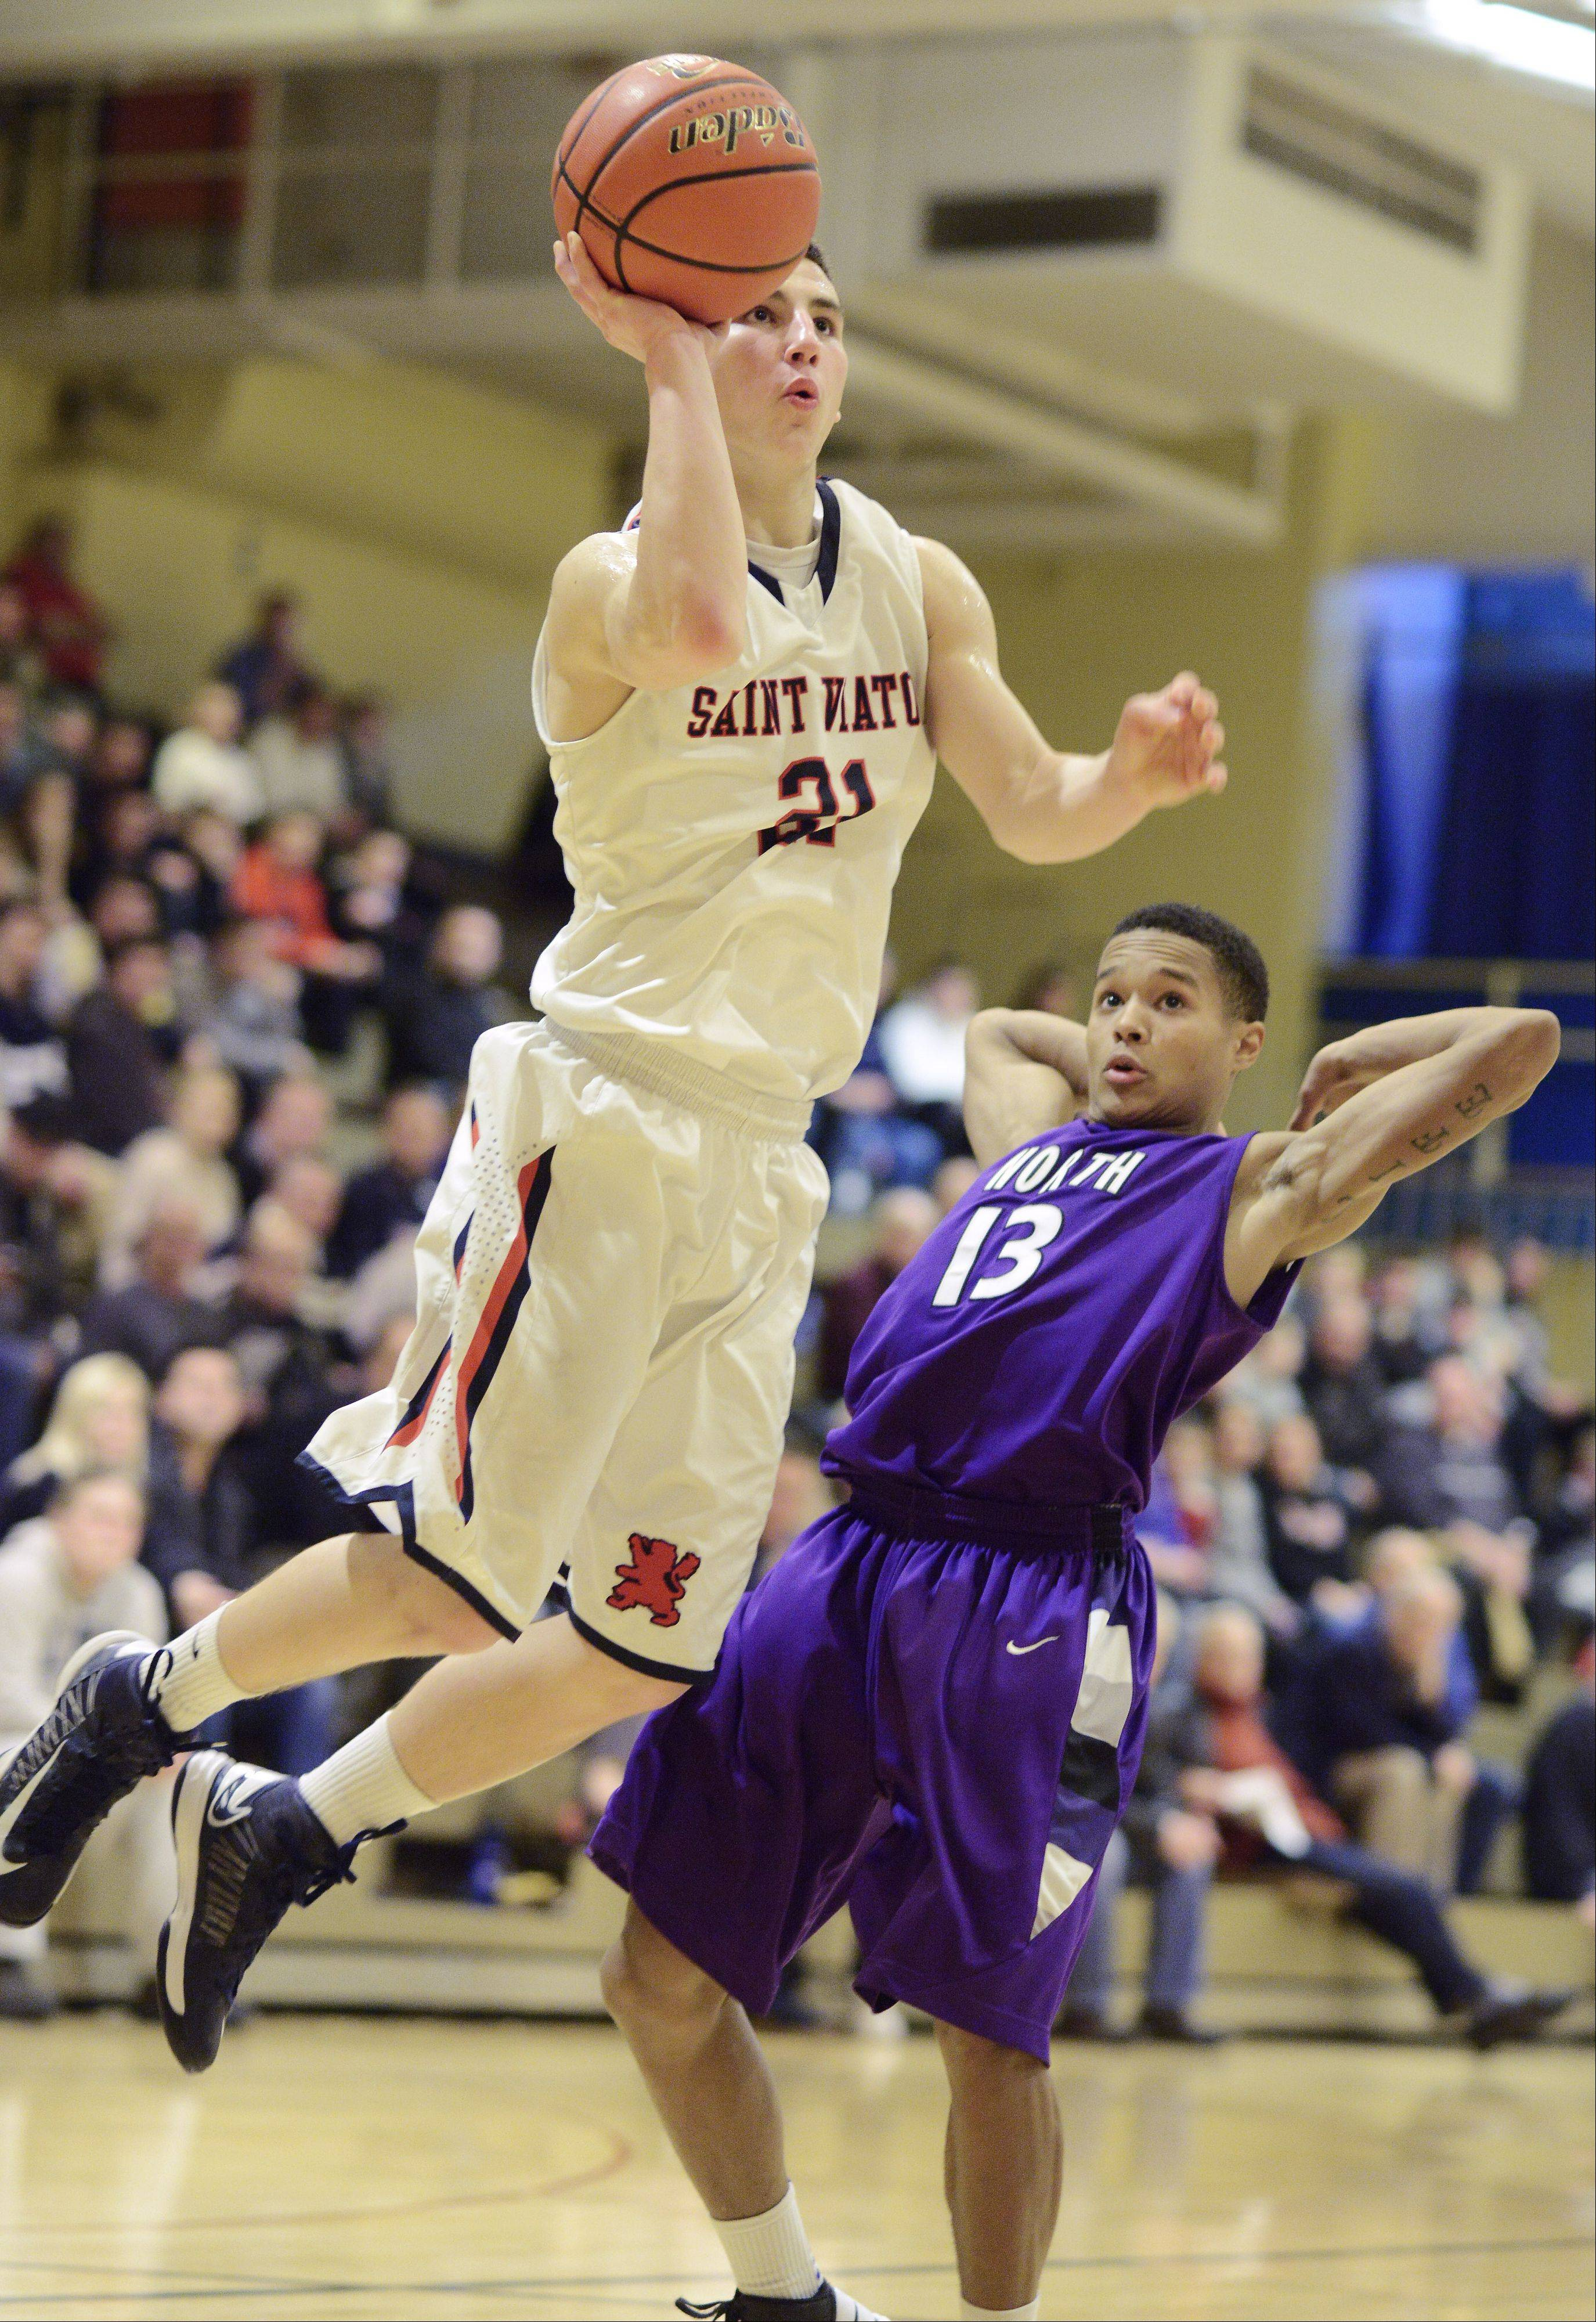 St. Viator succumbs to Niles North